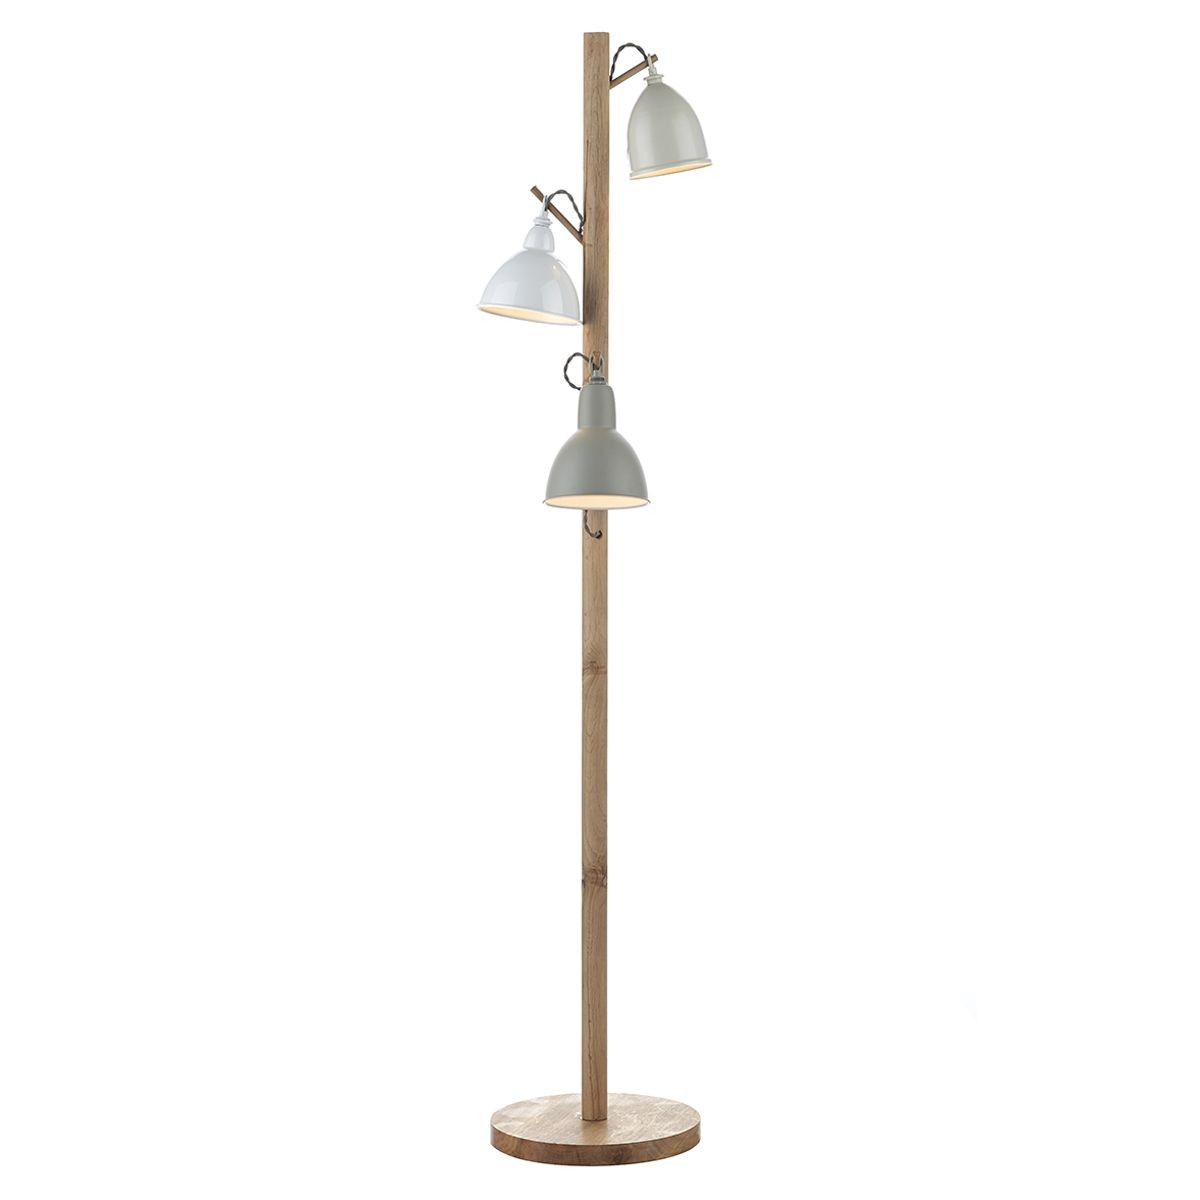 Blyton floor lamp 3 light complete with shades for Mantra 5 light floor lamp